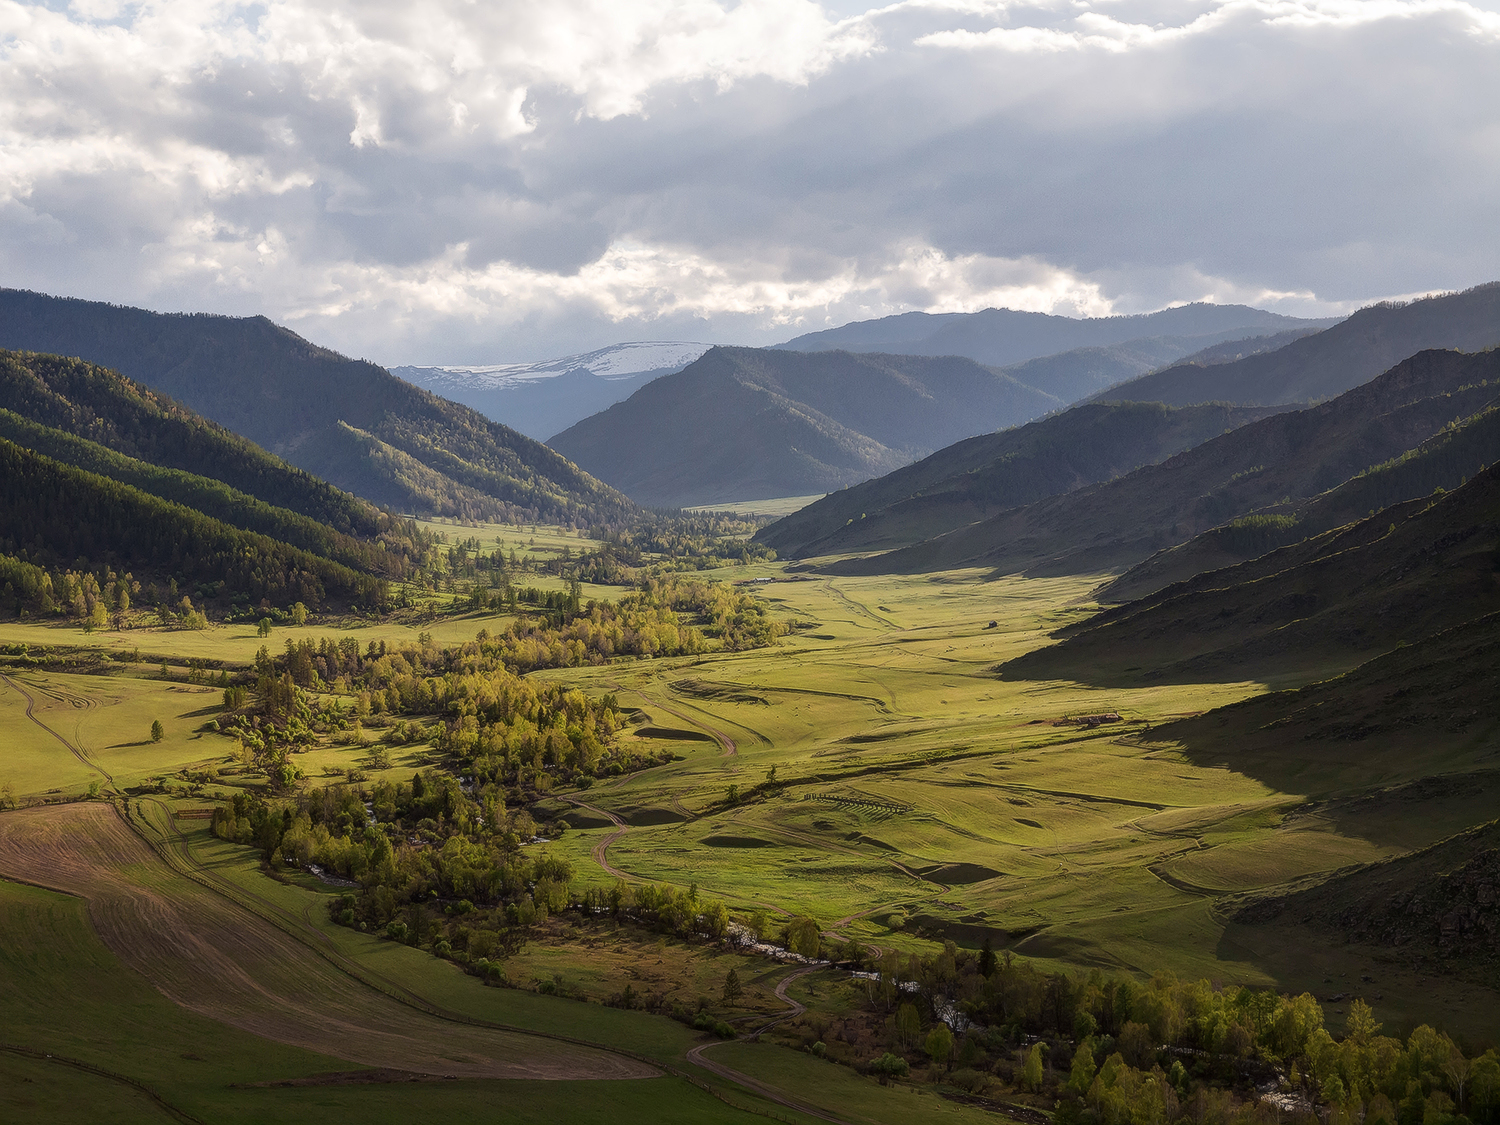 Nature reserves comprise 20 percent of the Altai Republic territory, and 126 natural monuments are also located in the area.